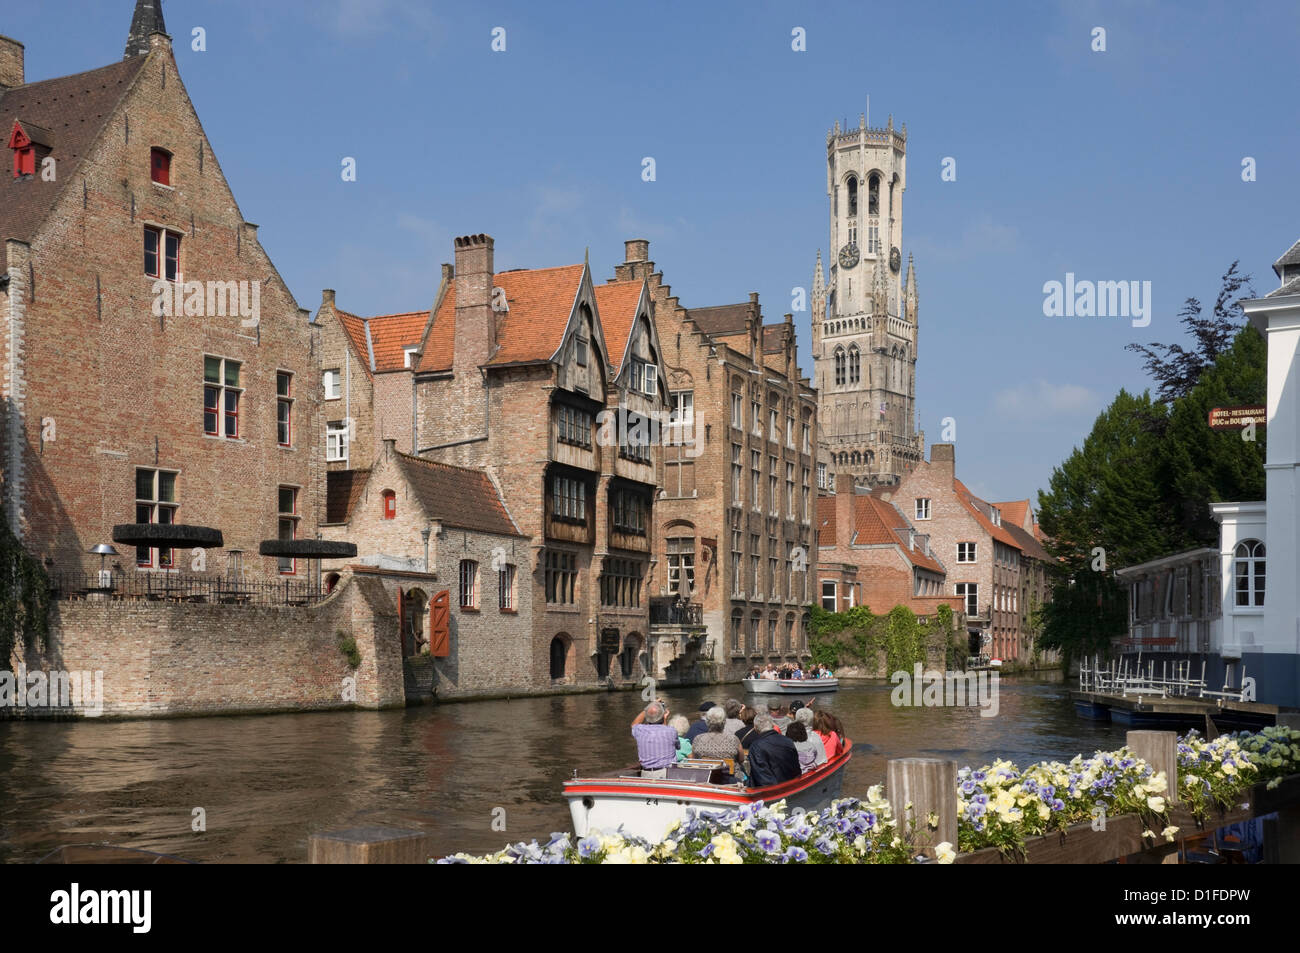 Canal view with a tour launch, Flemish gables and the Belfry tower, Brugge, UNESCO World Heritage Site, Belgium, - Stock Image